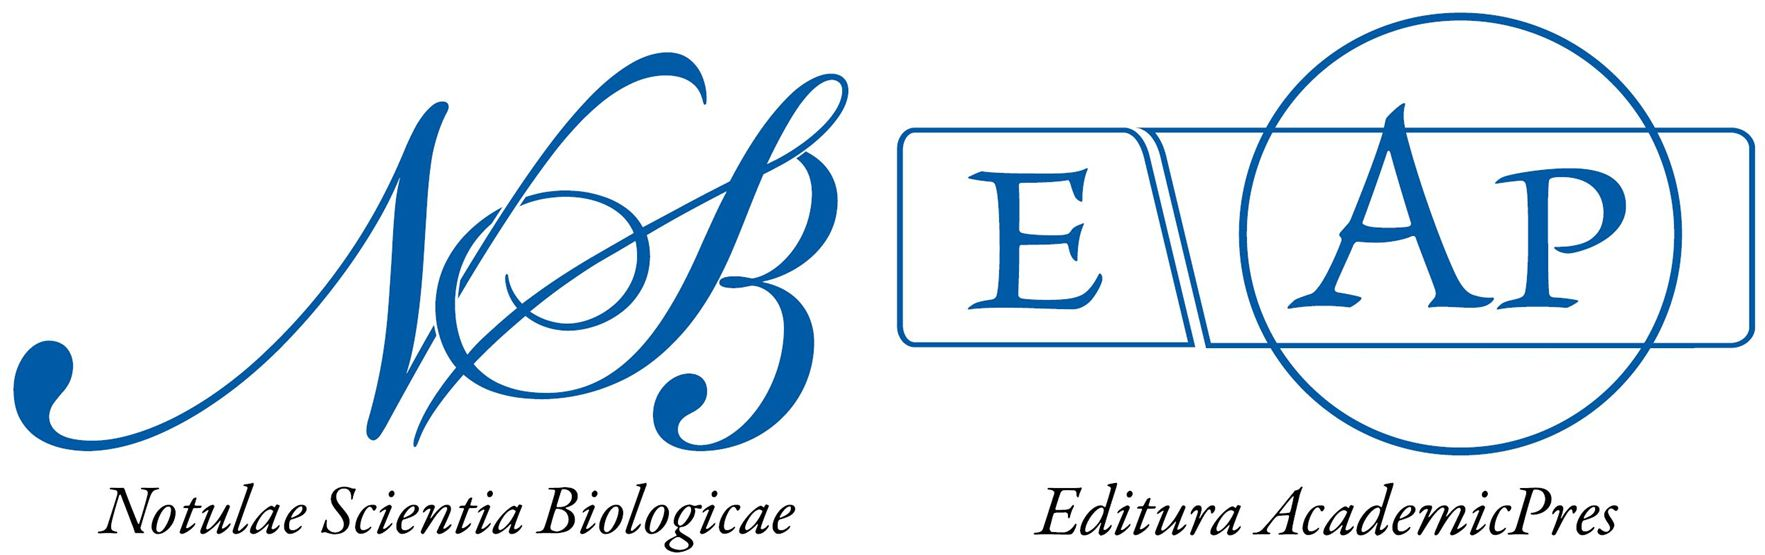 About the Journal | Notulae Scientia Biologicae